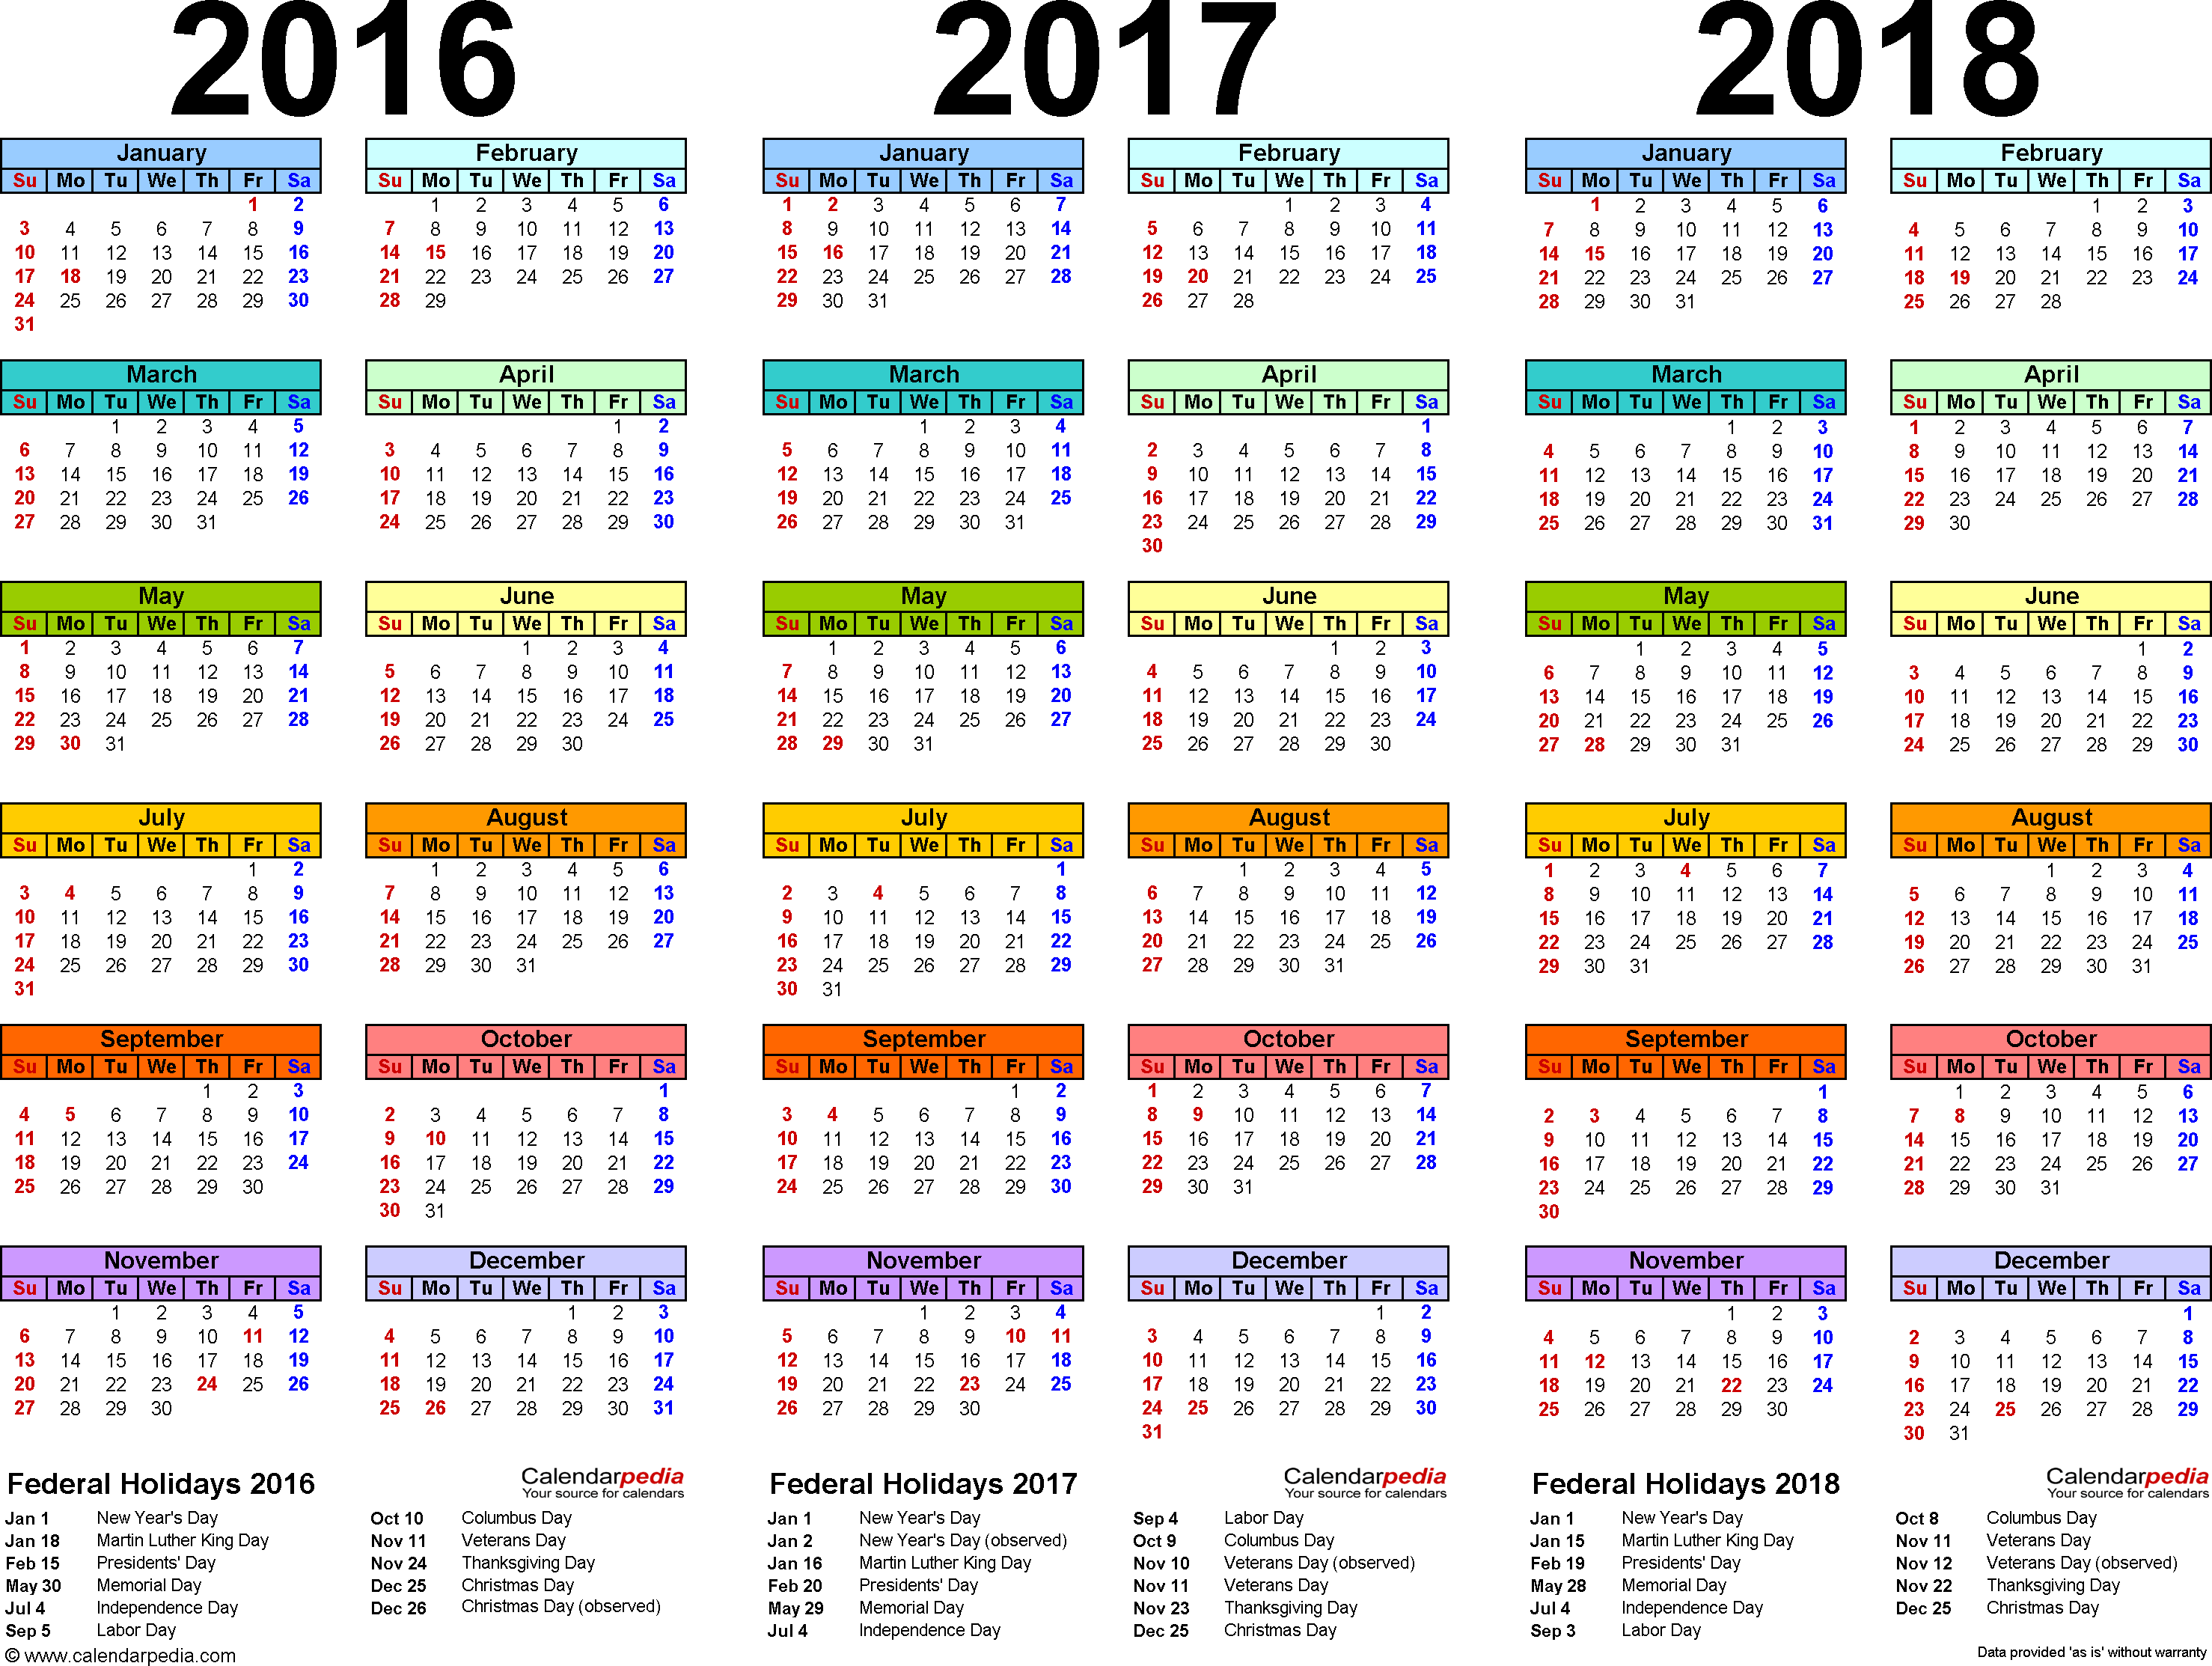 template 1  pdf template for three year calendar 2016  2017  2018  landscape orientation  1 page